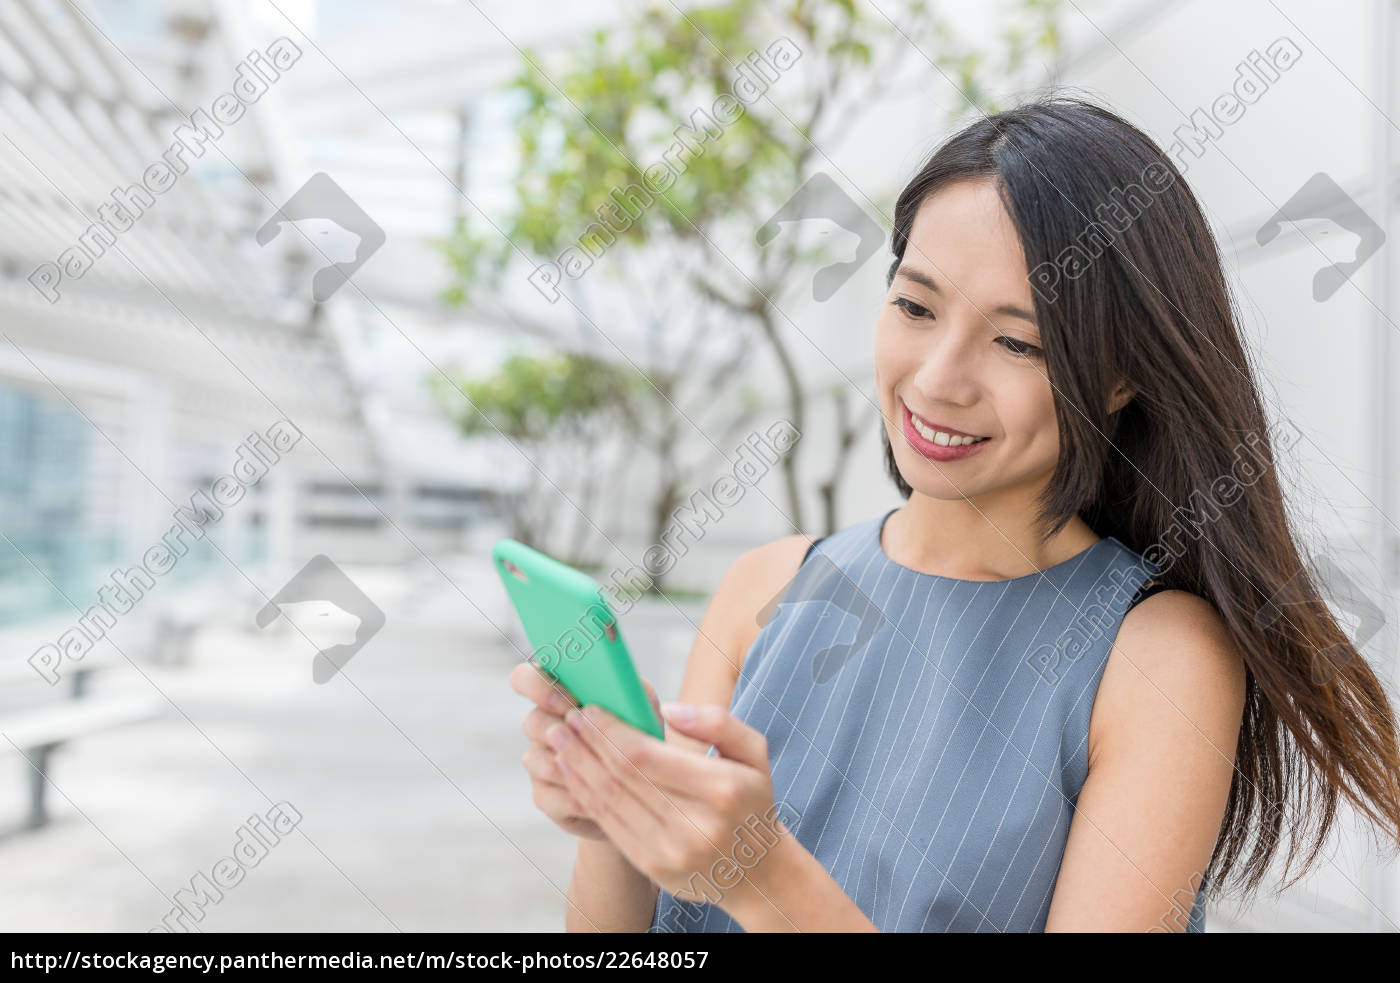 businesswoman, use, of, mobile, phone - 22648057